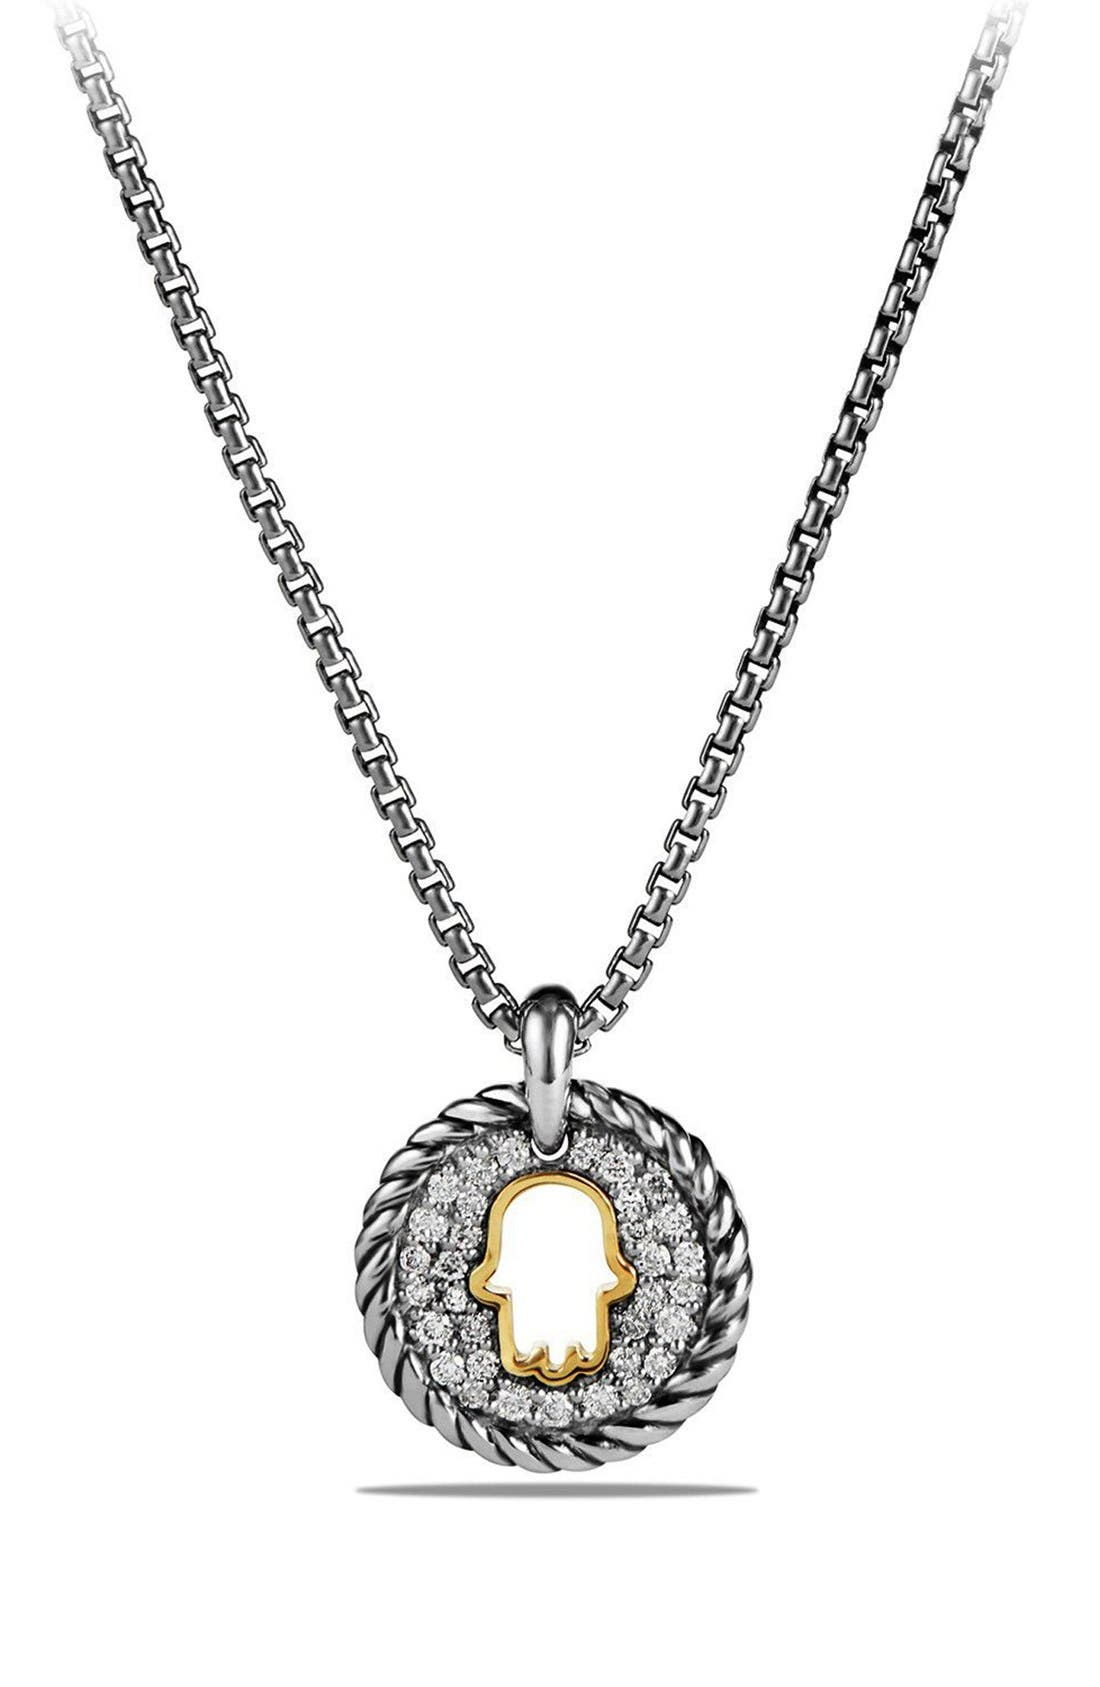 'Cable Collectibles' Hamsa Charm Necklace with Diamonds & 18K Gold,                             Main thumbnail 1, color,                             SILVER